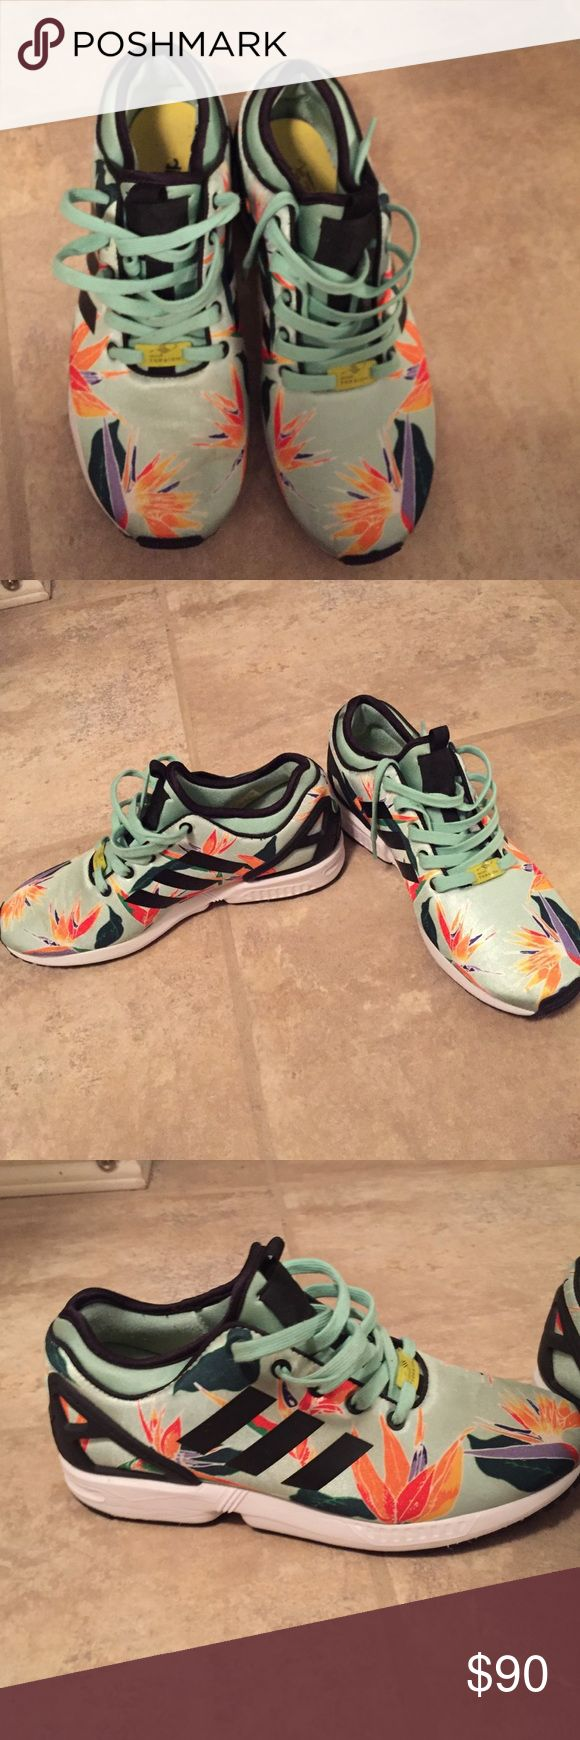 Adidas Zx flux shoes Worn 3 times. Adidas Shoes Sneakers